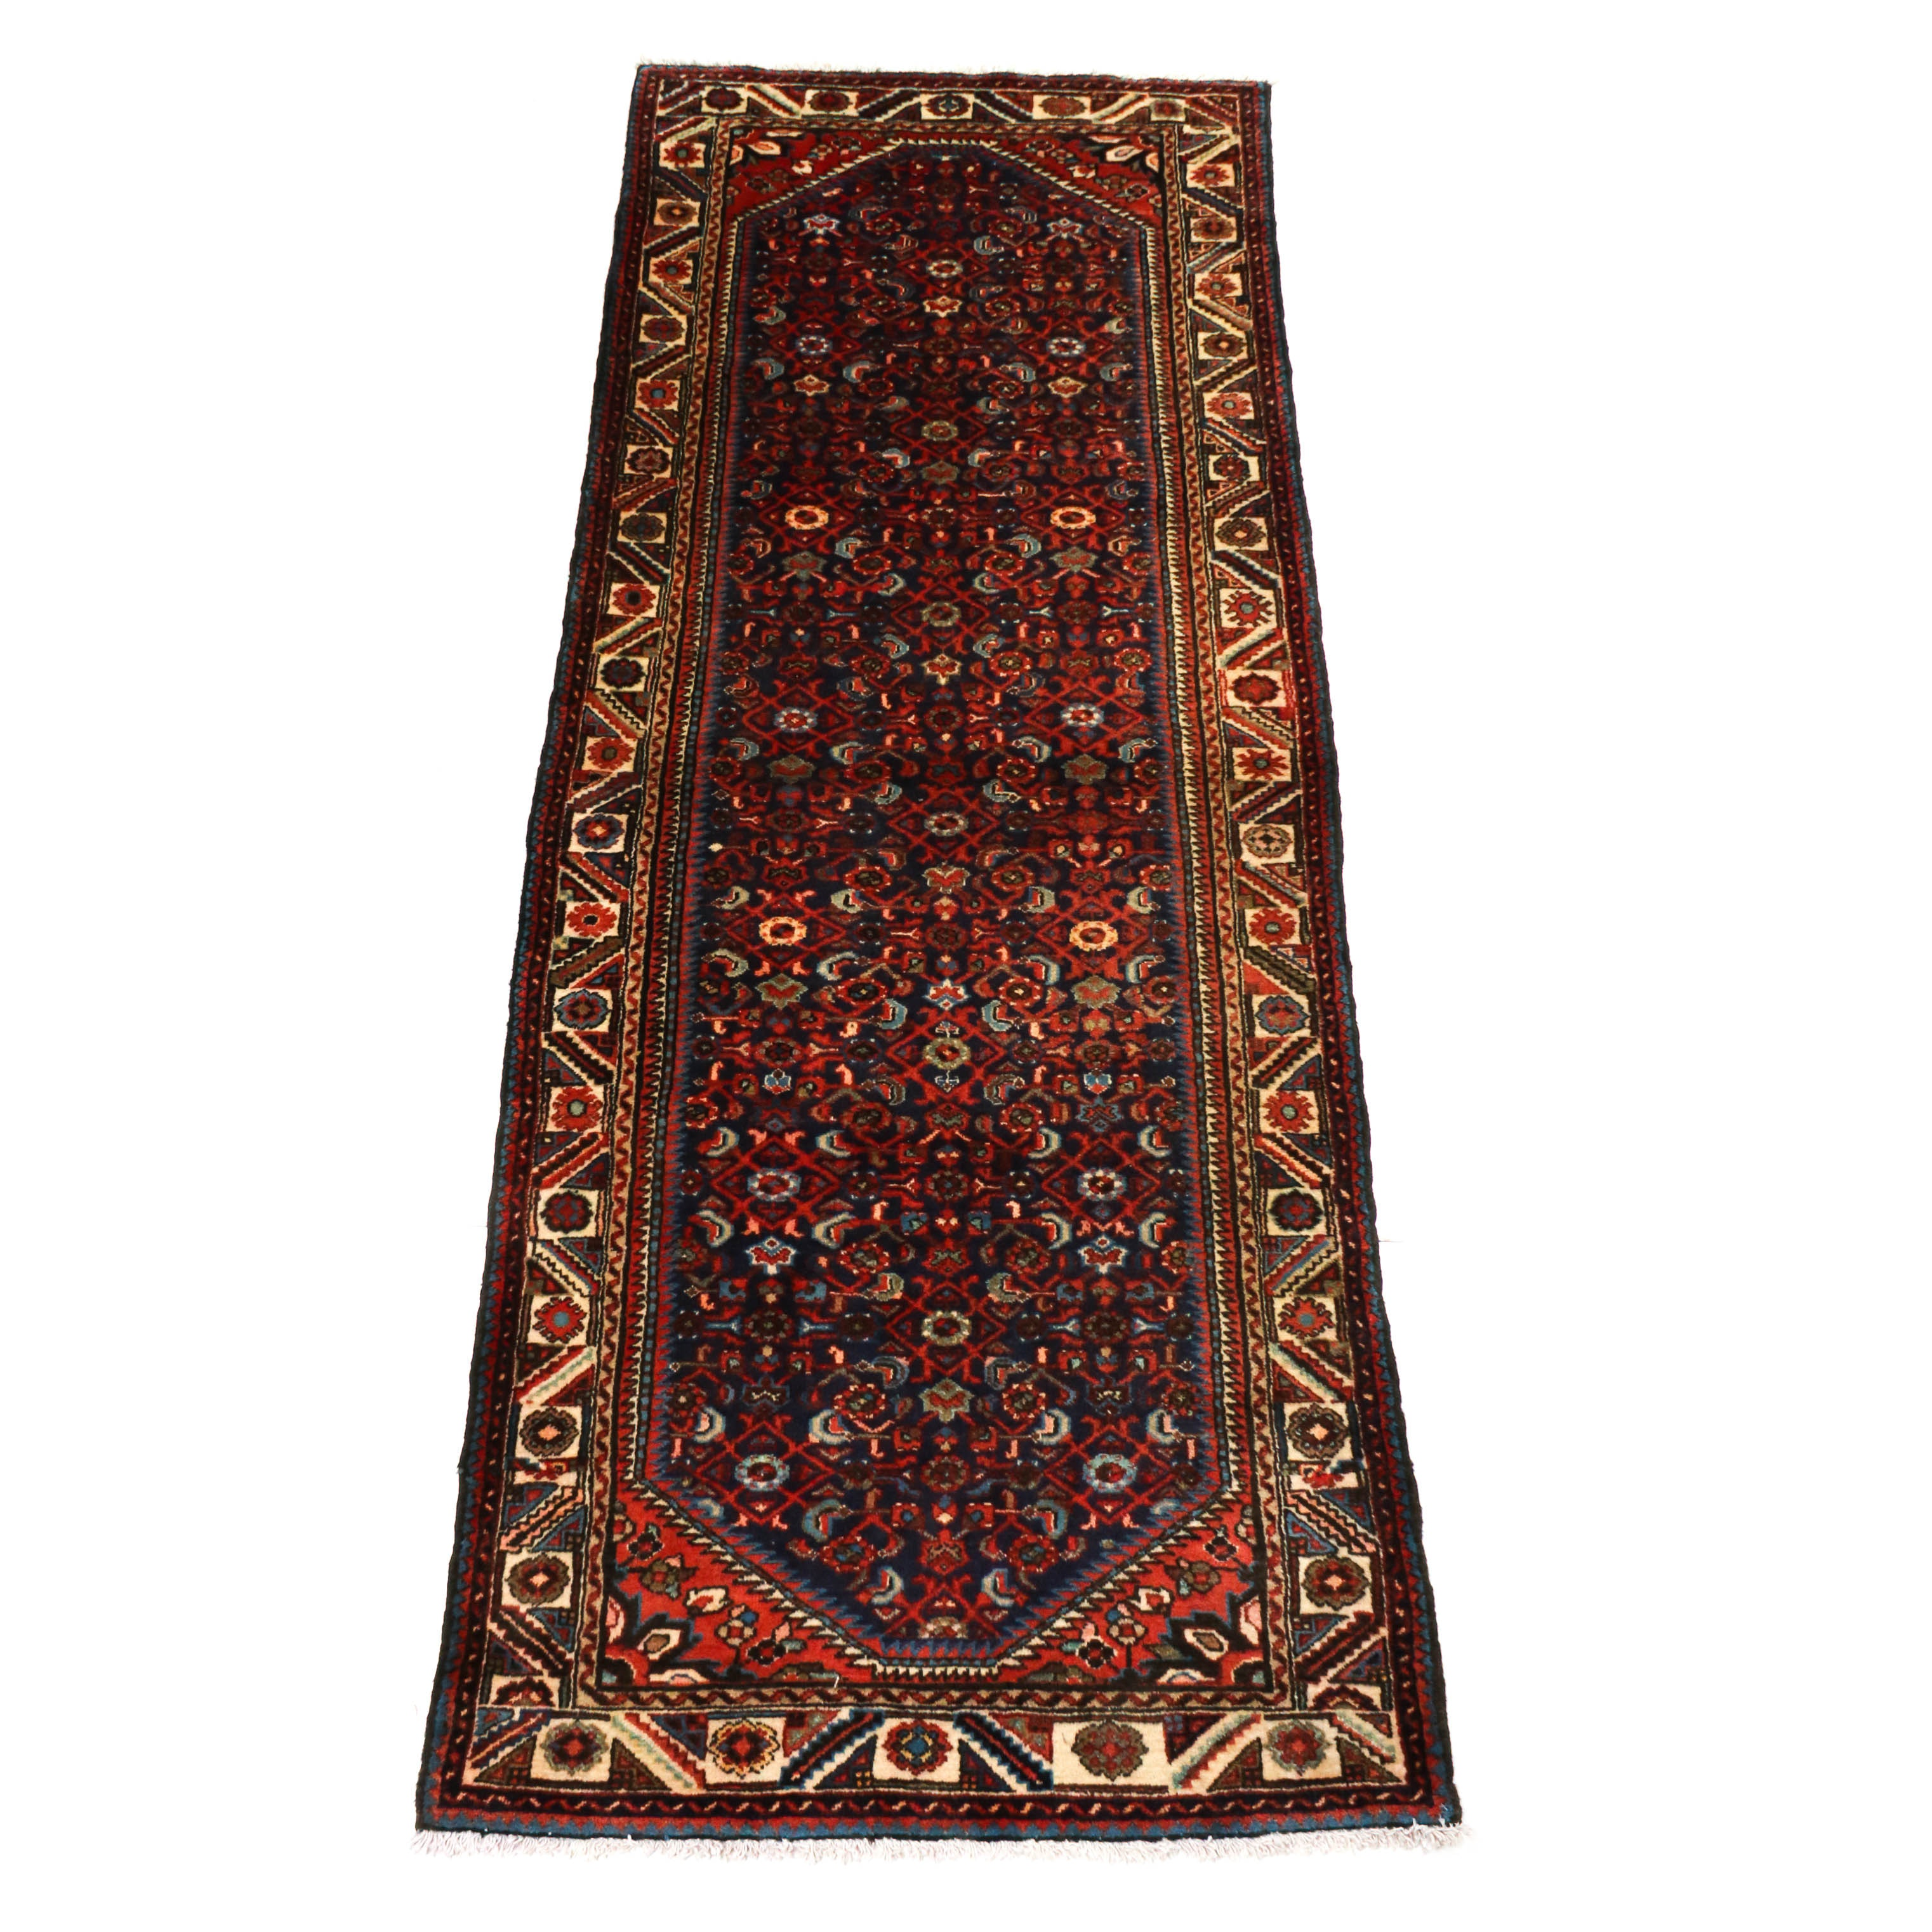 3'7 x 9'6 Hand-Knotted Persian Malayer Wool Carpet Runner, Circa 1930